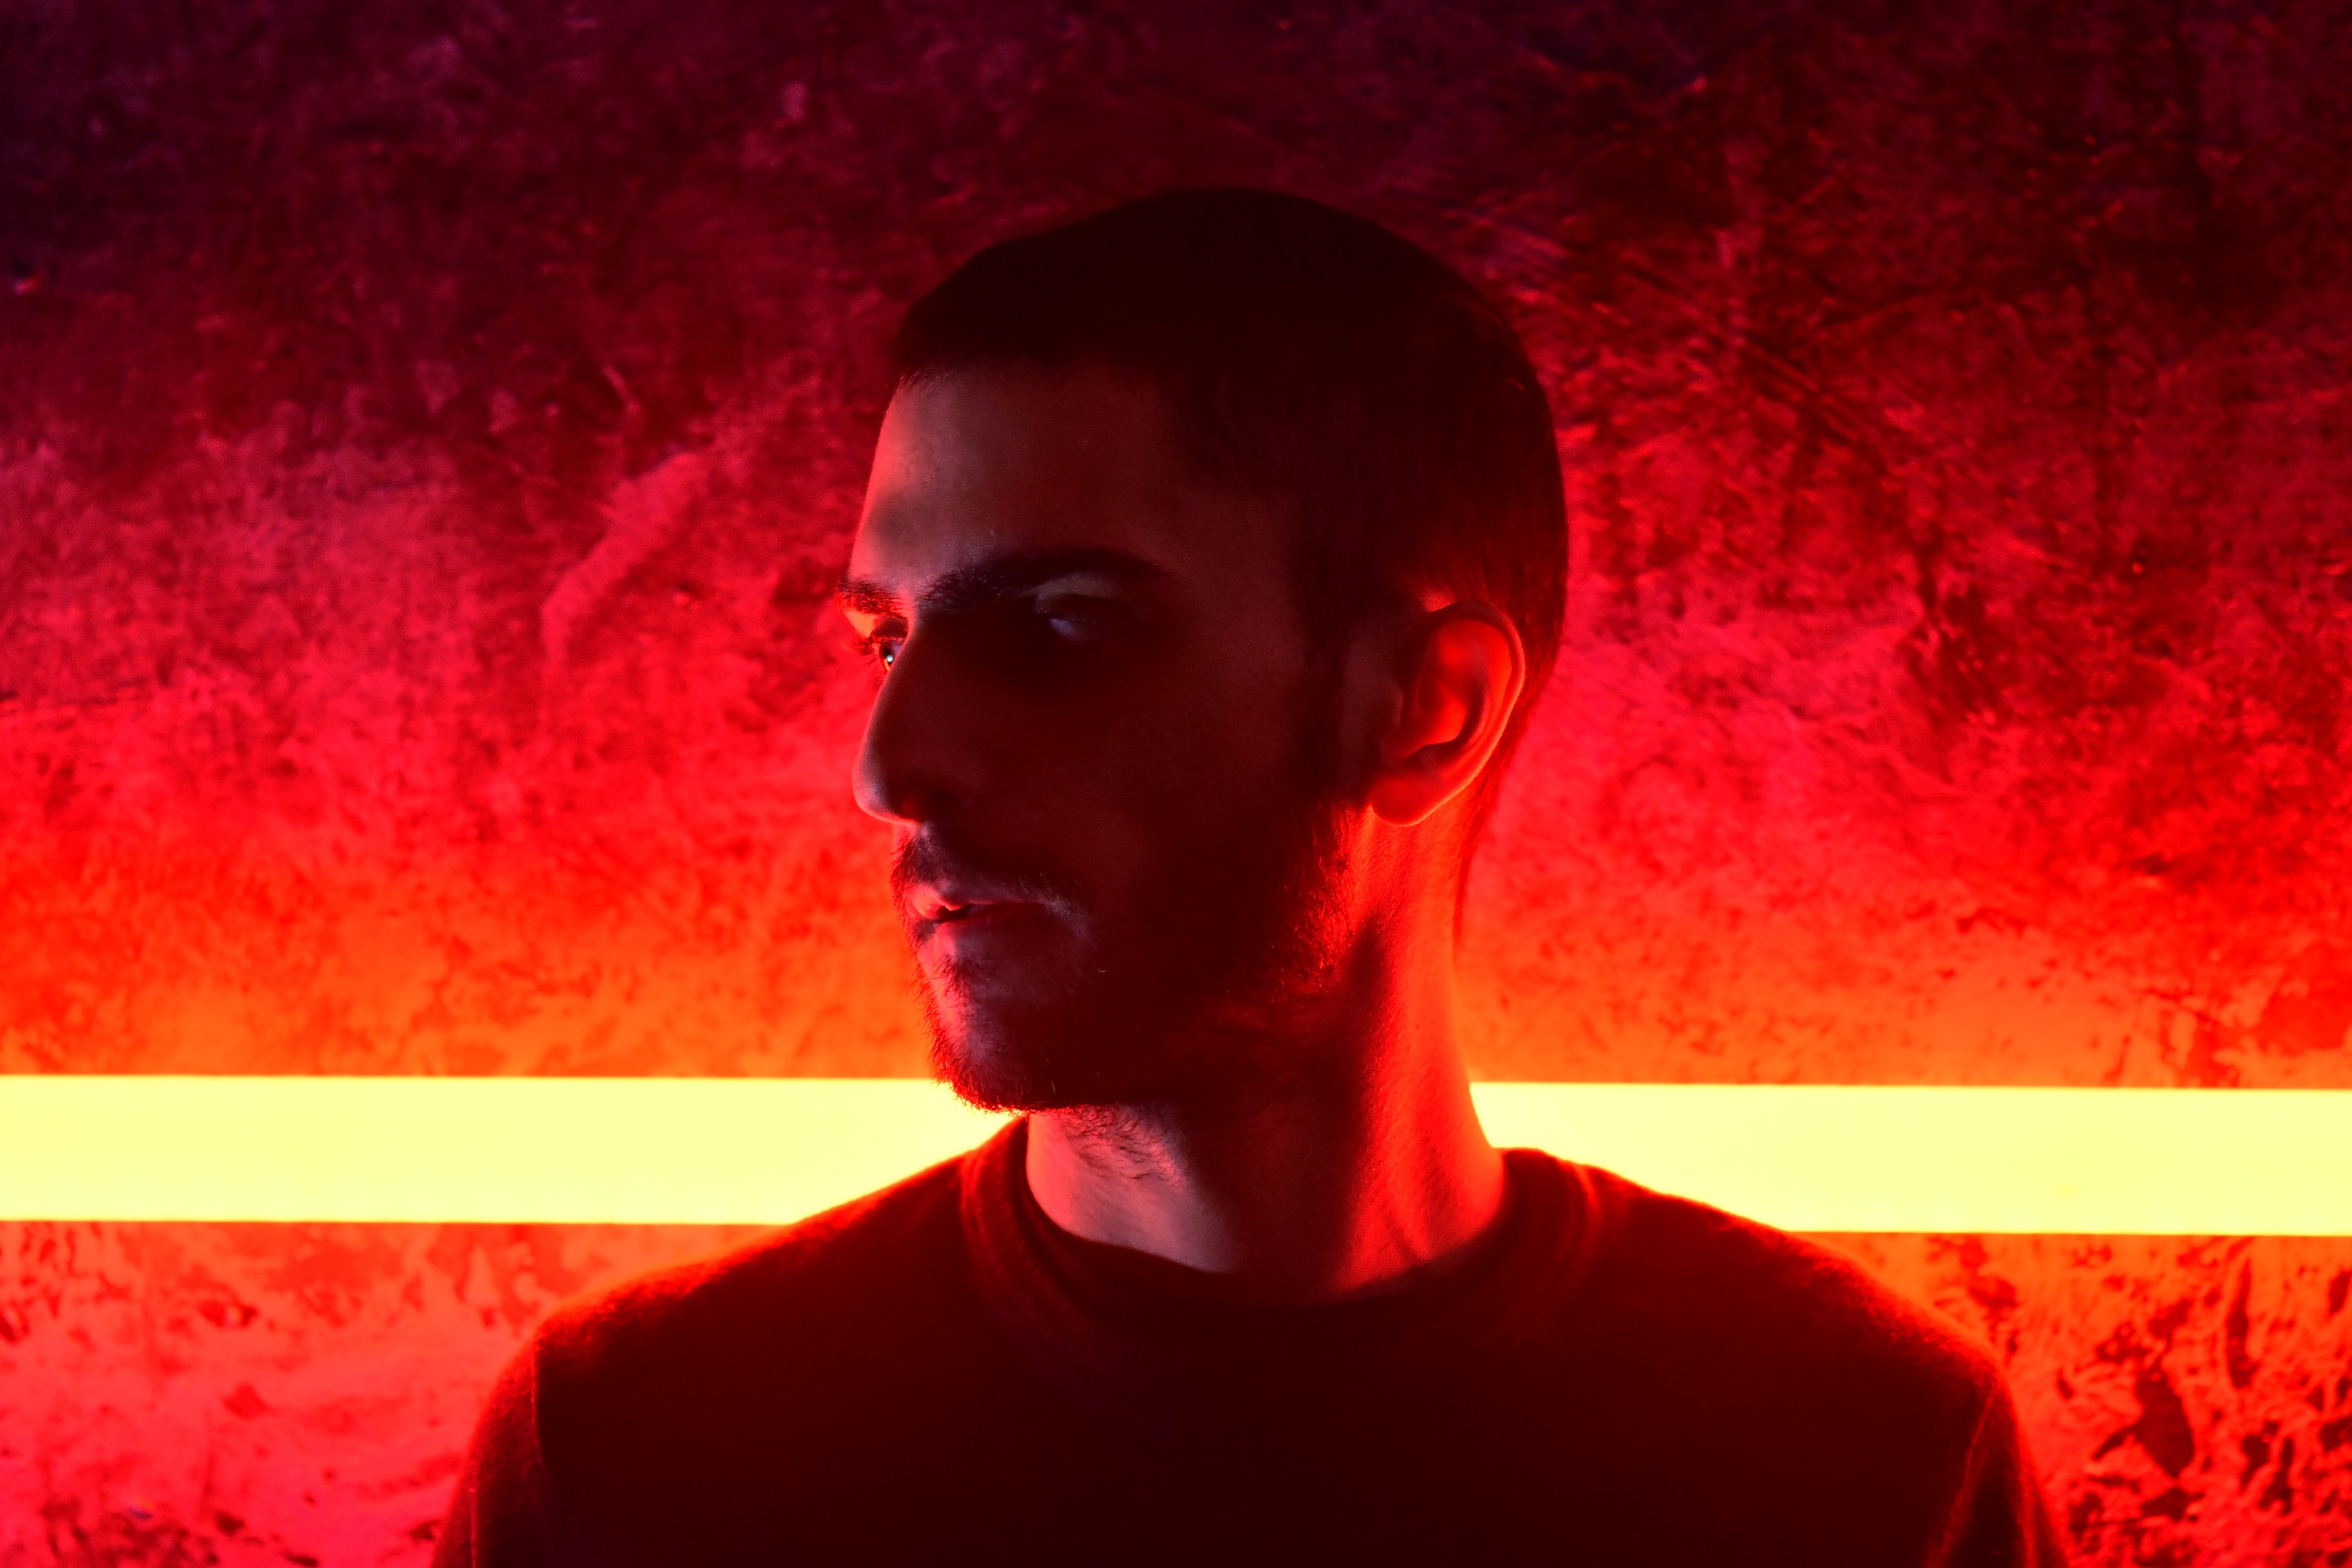 Al'Tarba in an Electro/Hip Hop artist from Toulouse. Today he is streaming his forthcoming release La Nuit Se Lève 'The Night Rises'